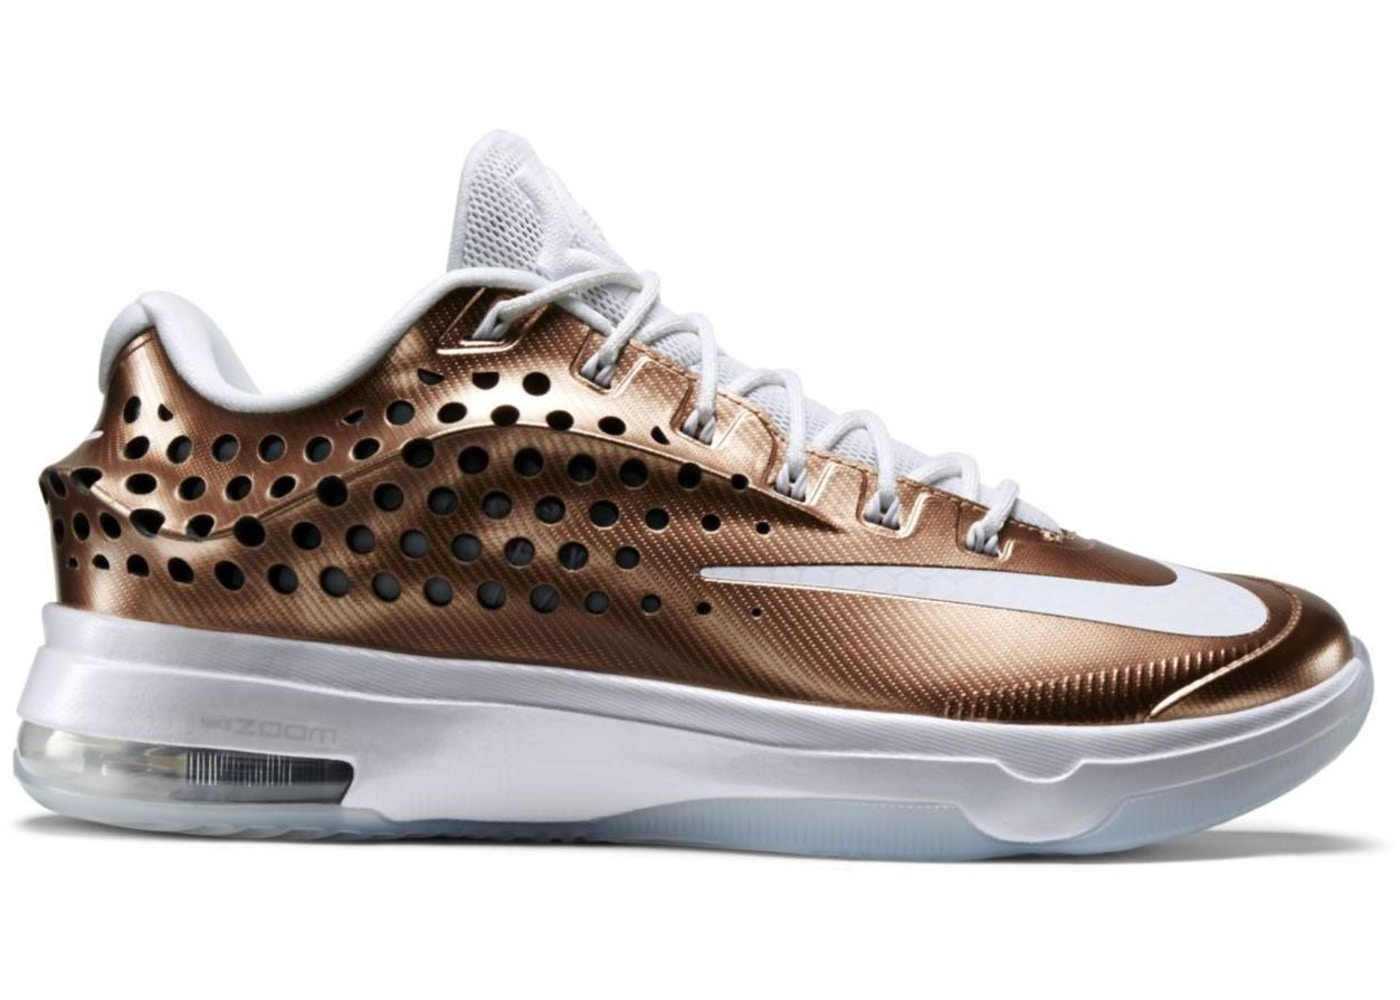 newest e43ee 2a677 Nike KD 7 Shoes - Price Premium